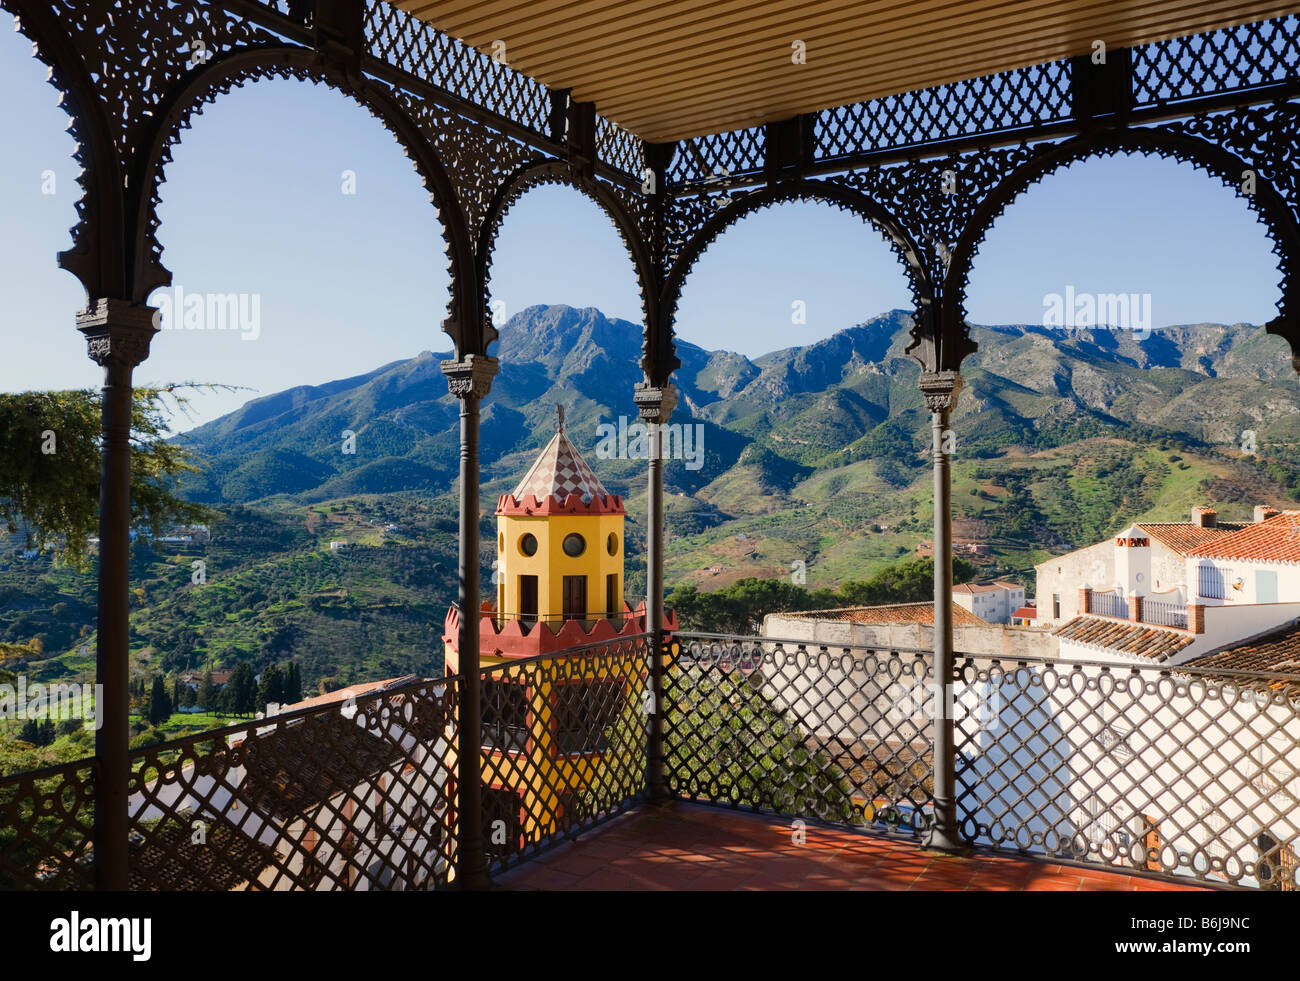 Carratraca Malaga Province Spain Balcony of 19th century Doña Trinidad Grund palace now Town Hall - Stock Image